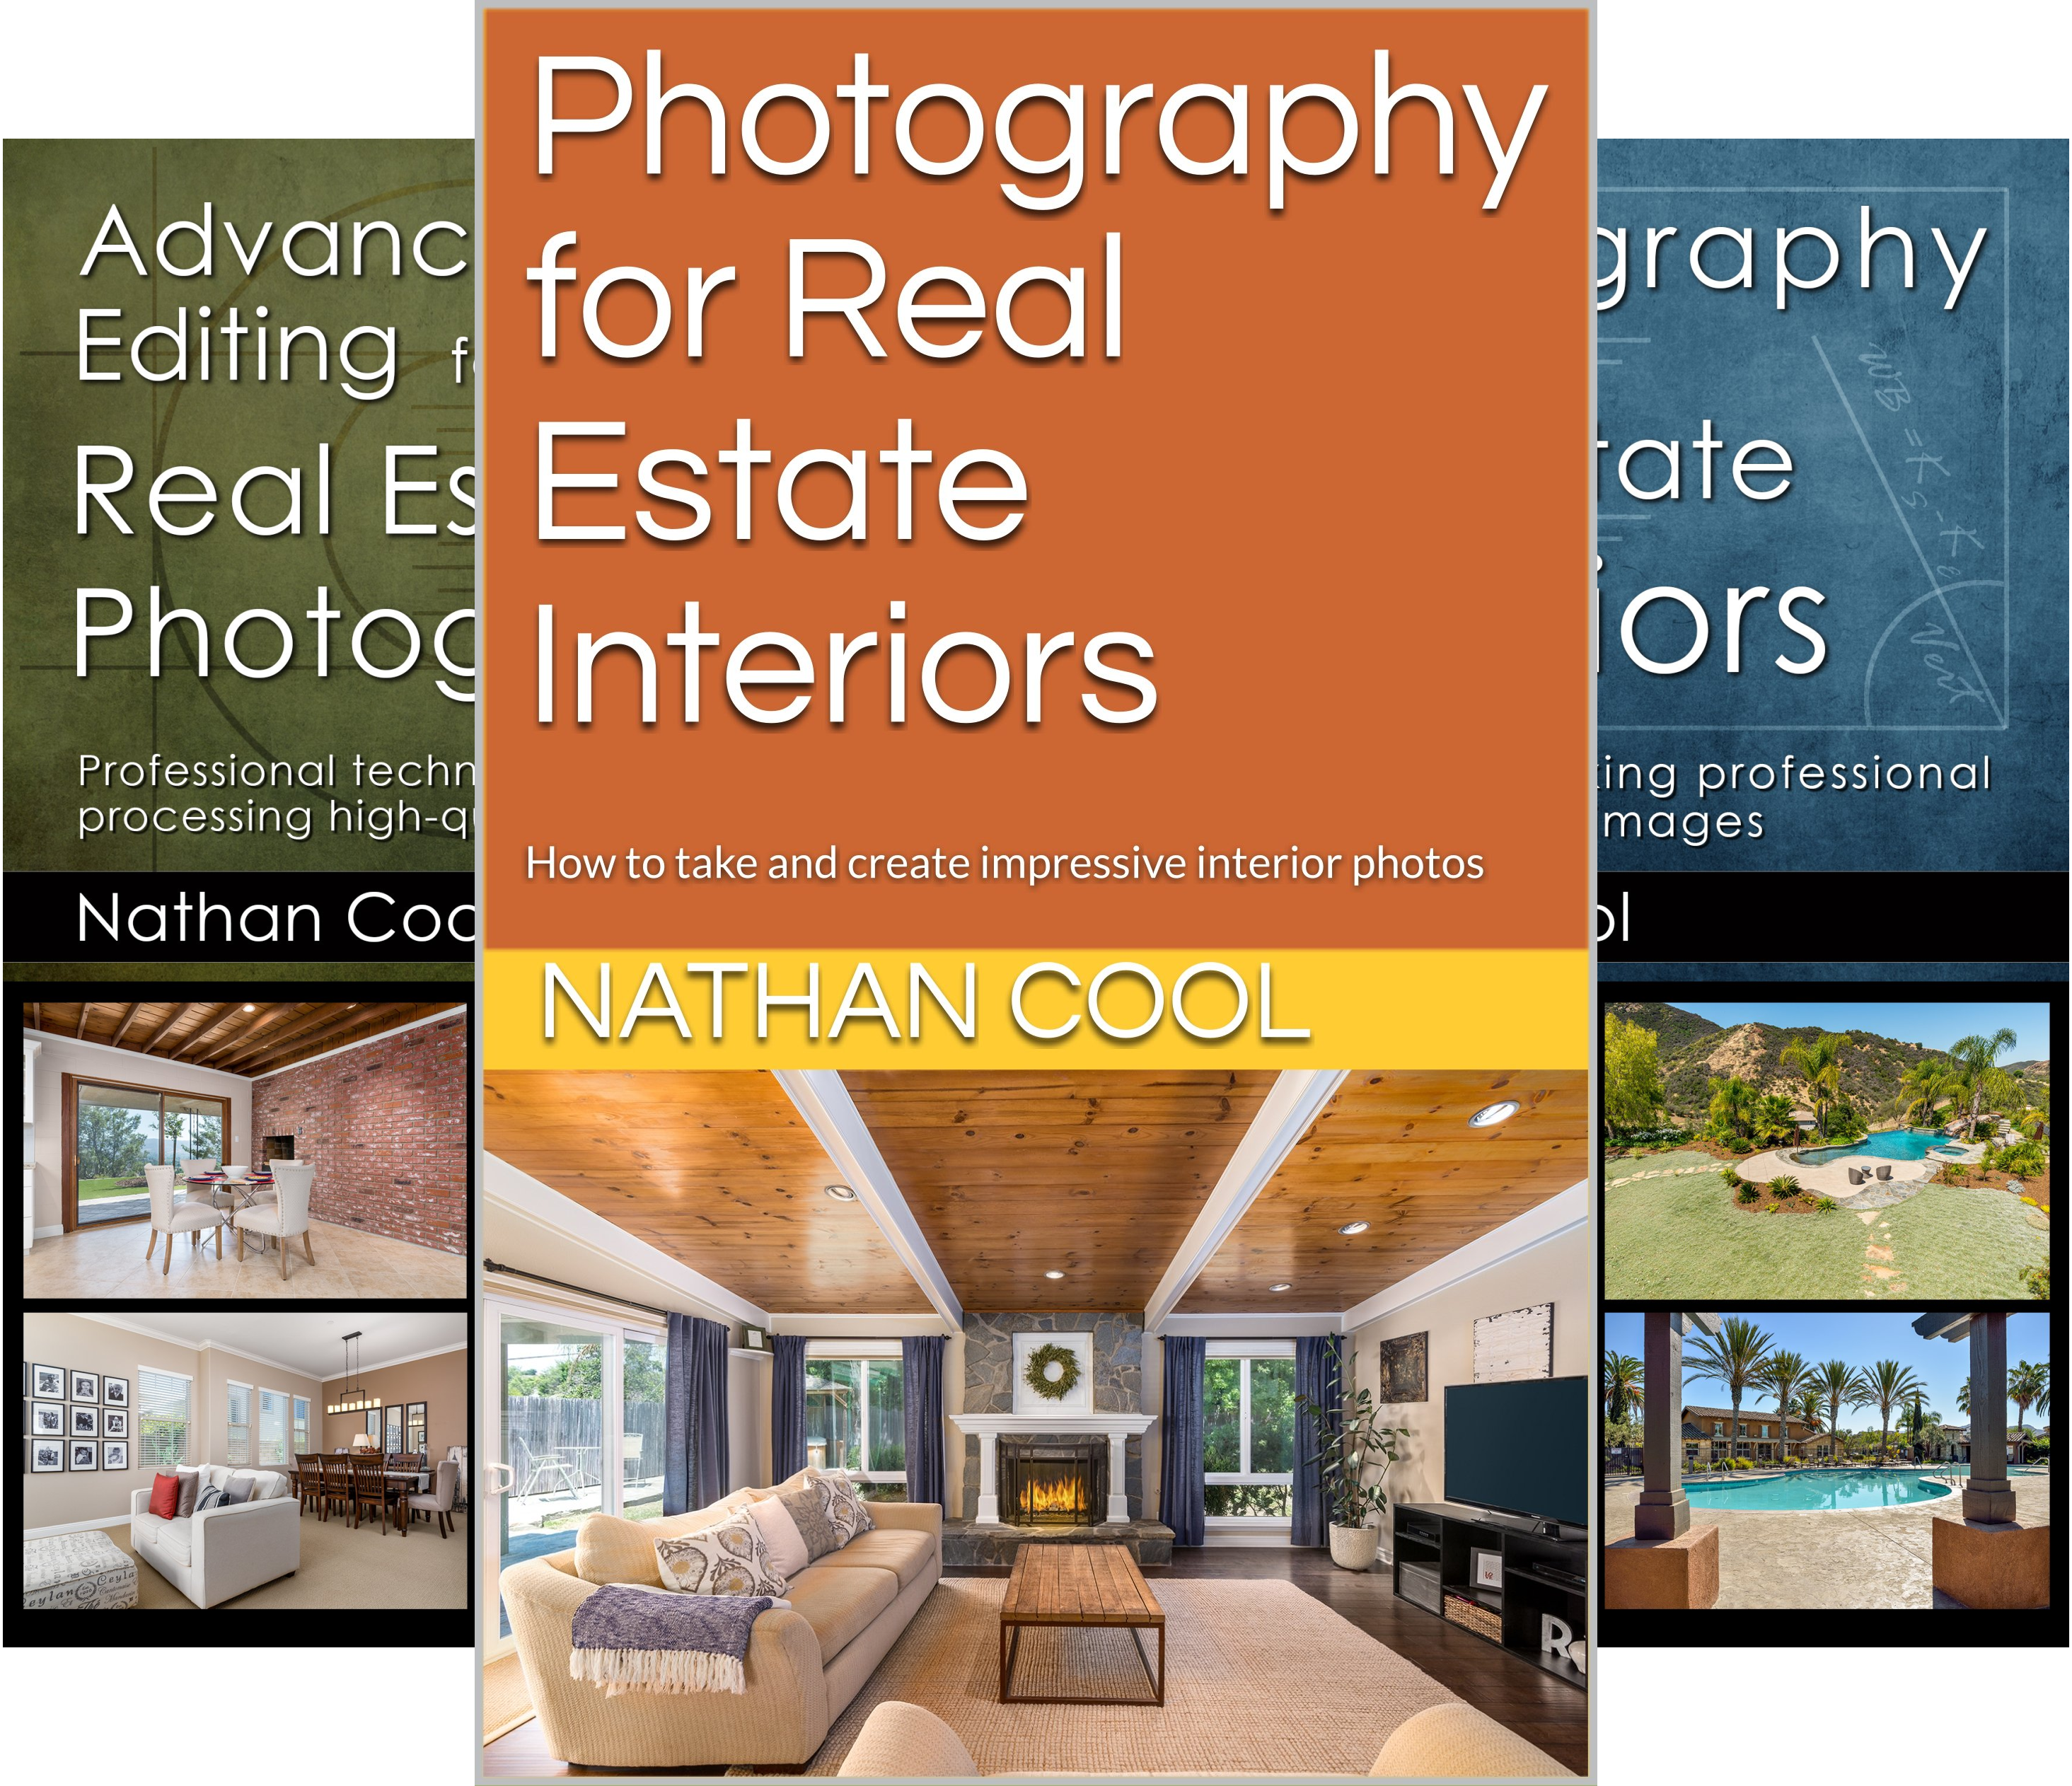 Real Estate Photography (4 Book Series)